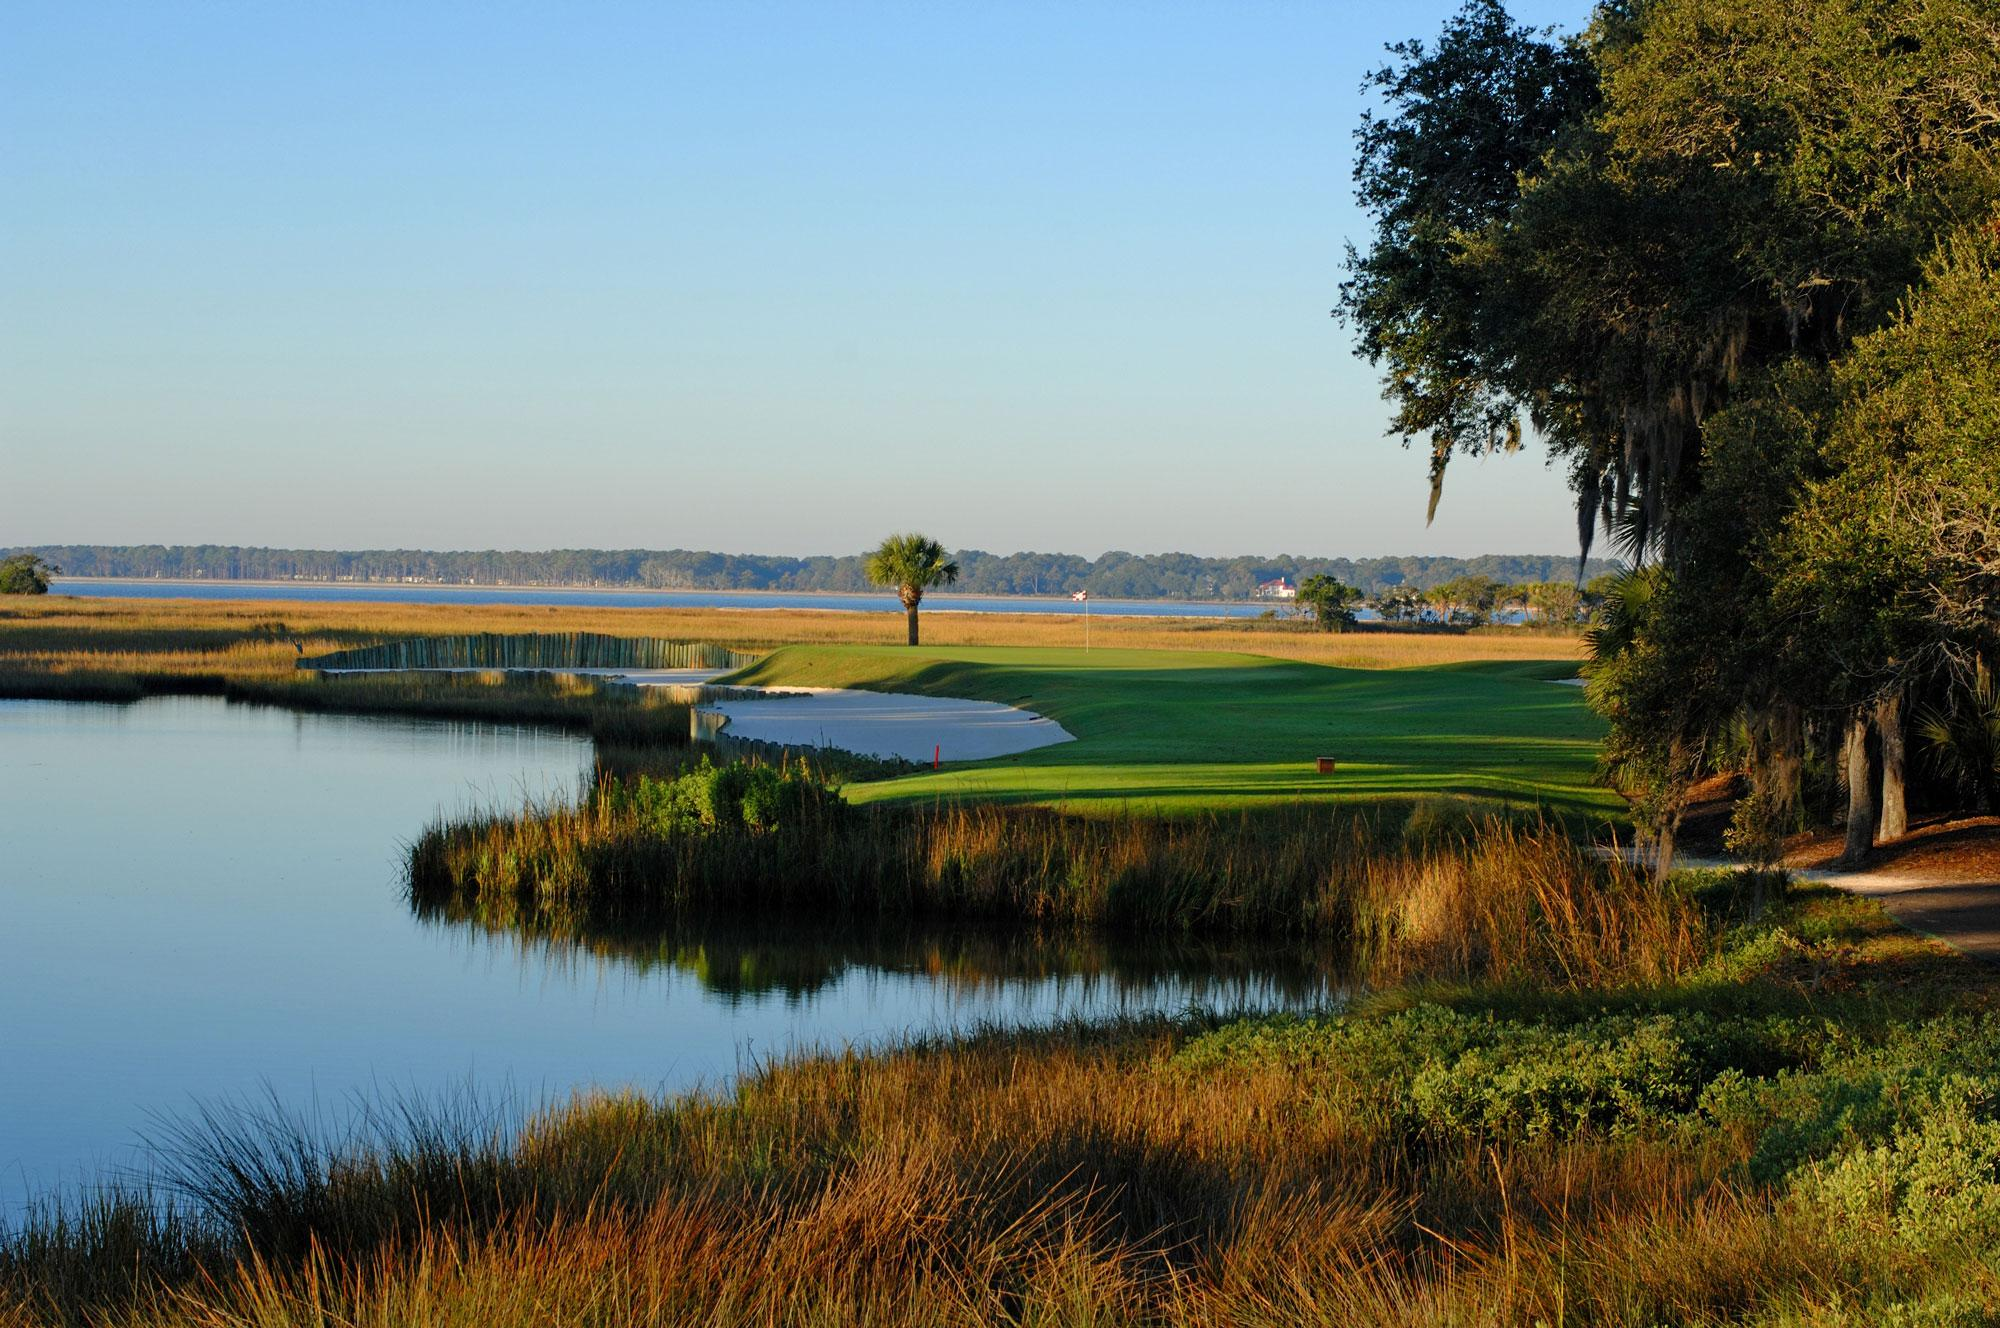 View Harbour Town Golf Links's picturesque golf course within dazzling South Carolina.